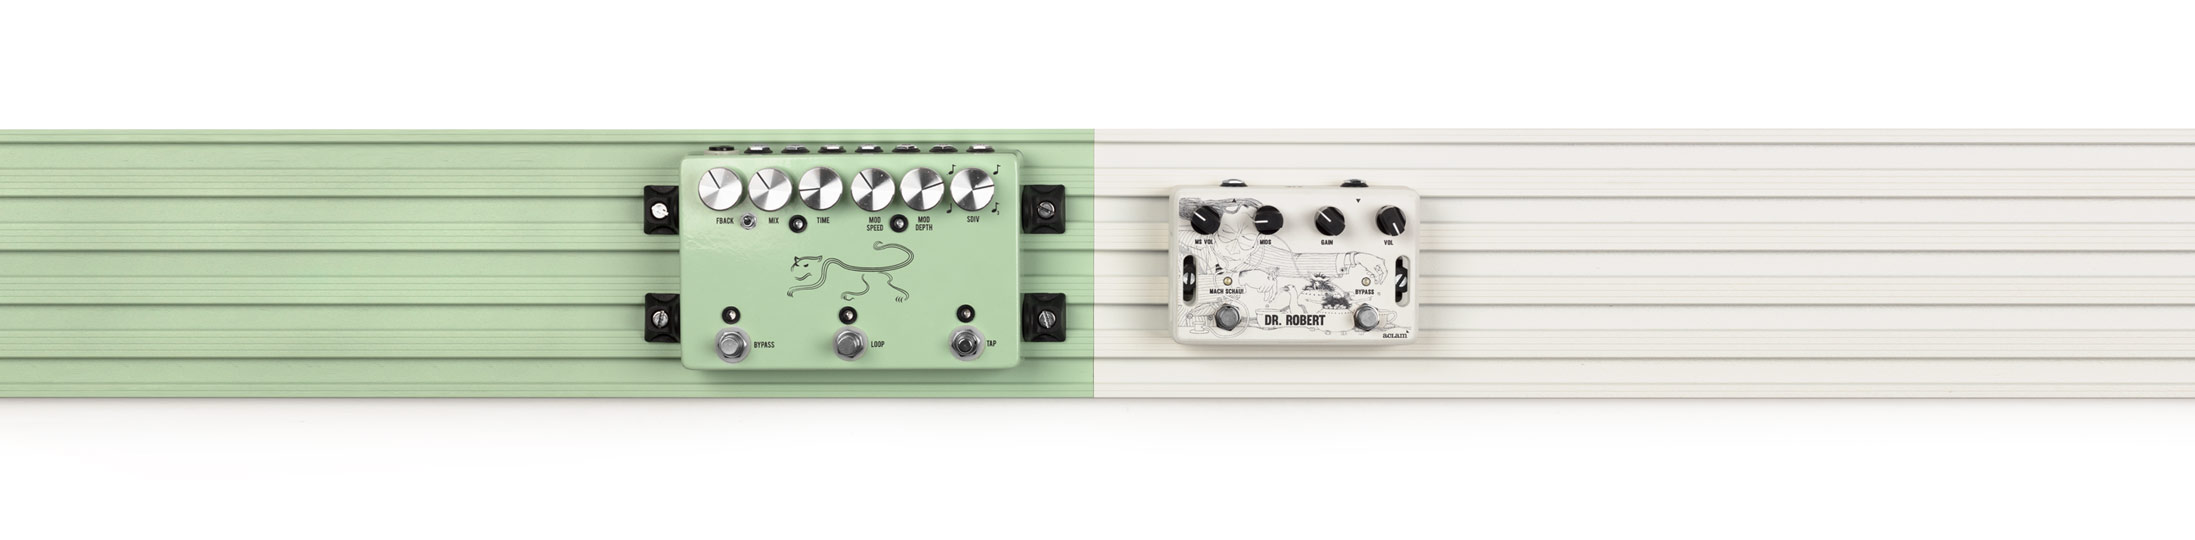 green-surf-white-pedalboards